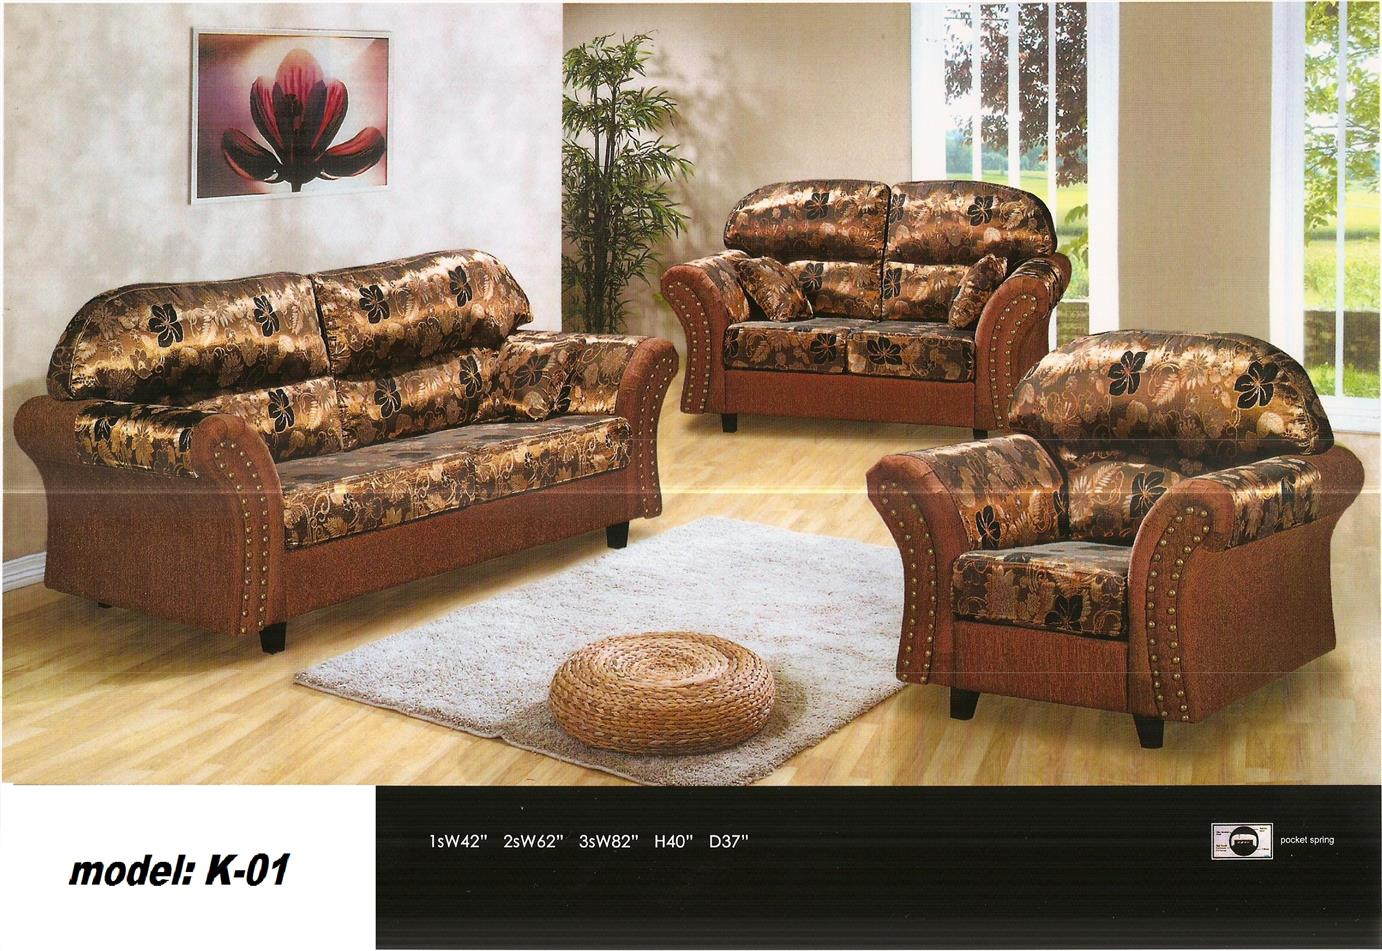 nicehome special offer price sofa1+2+3 model-K01